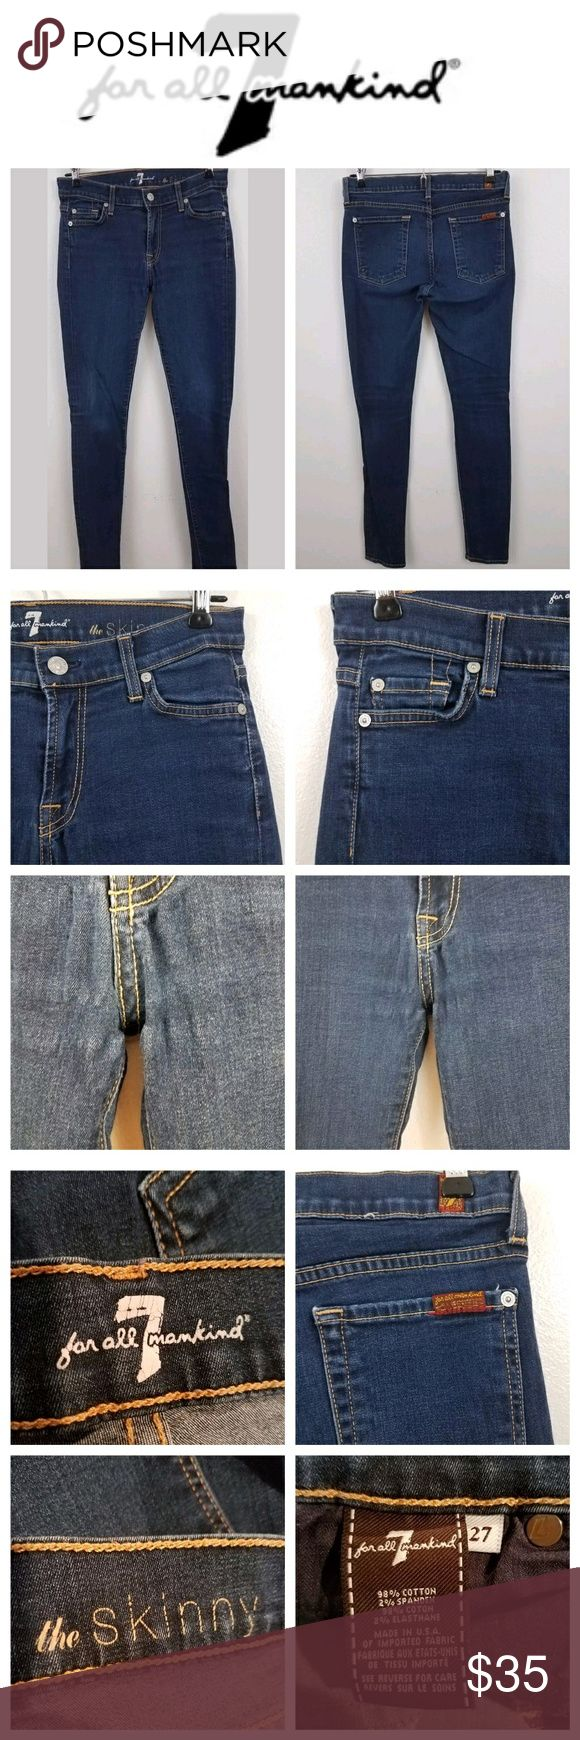 7 For All Mankind skinny dark wash jeans stretch Seven For All Mankind women's size 27 dark wash skinny jeans. There is some pulling around the crotch as well as some wear on the knees. Inseam measures 30 inches.  Inv R. 7 For All Mankind Jeans Skinny